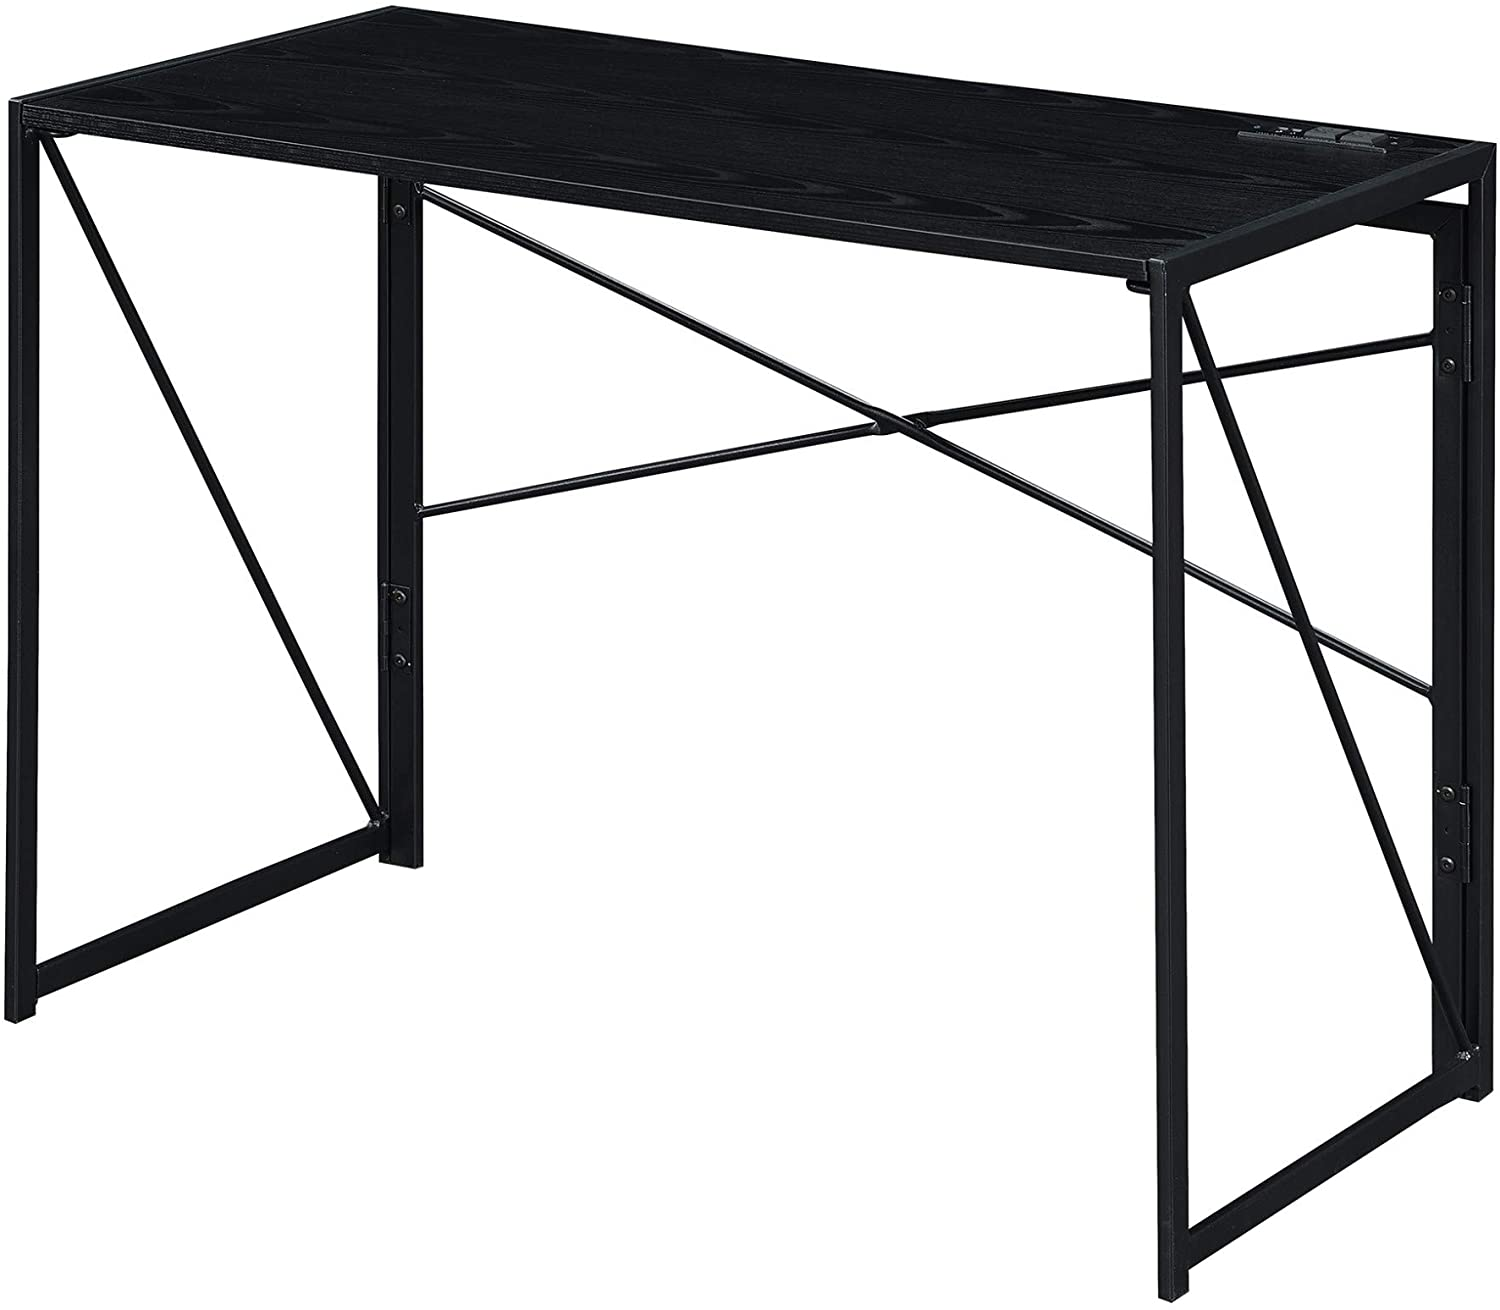 Convenience Concepts Xtra Folding Desk with Charging Station, Black/Black